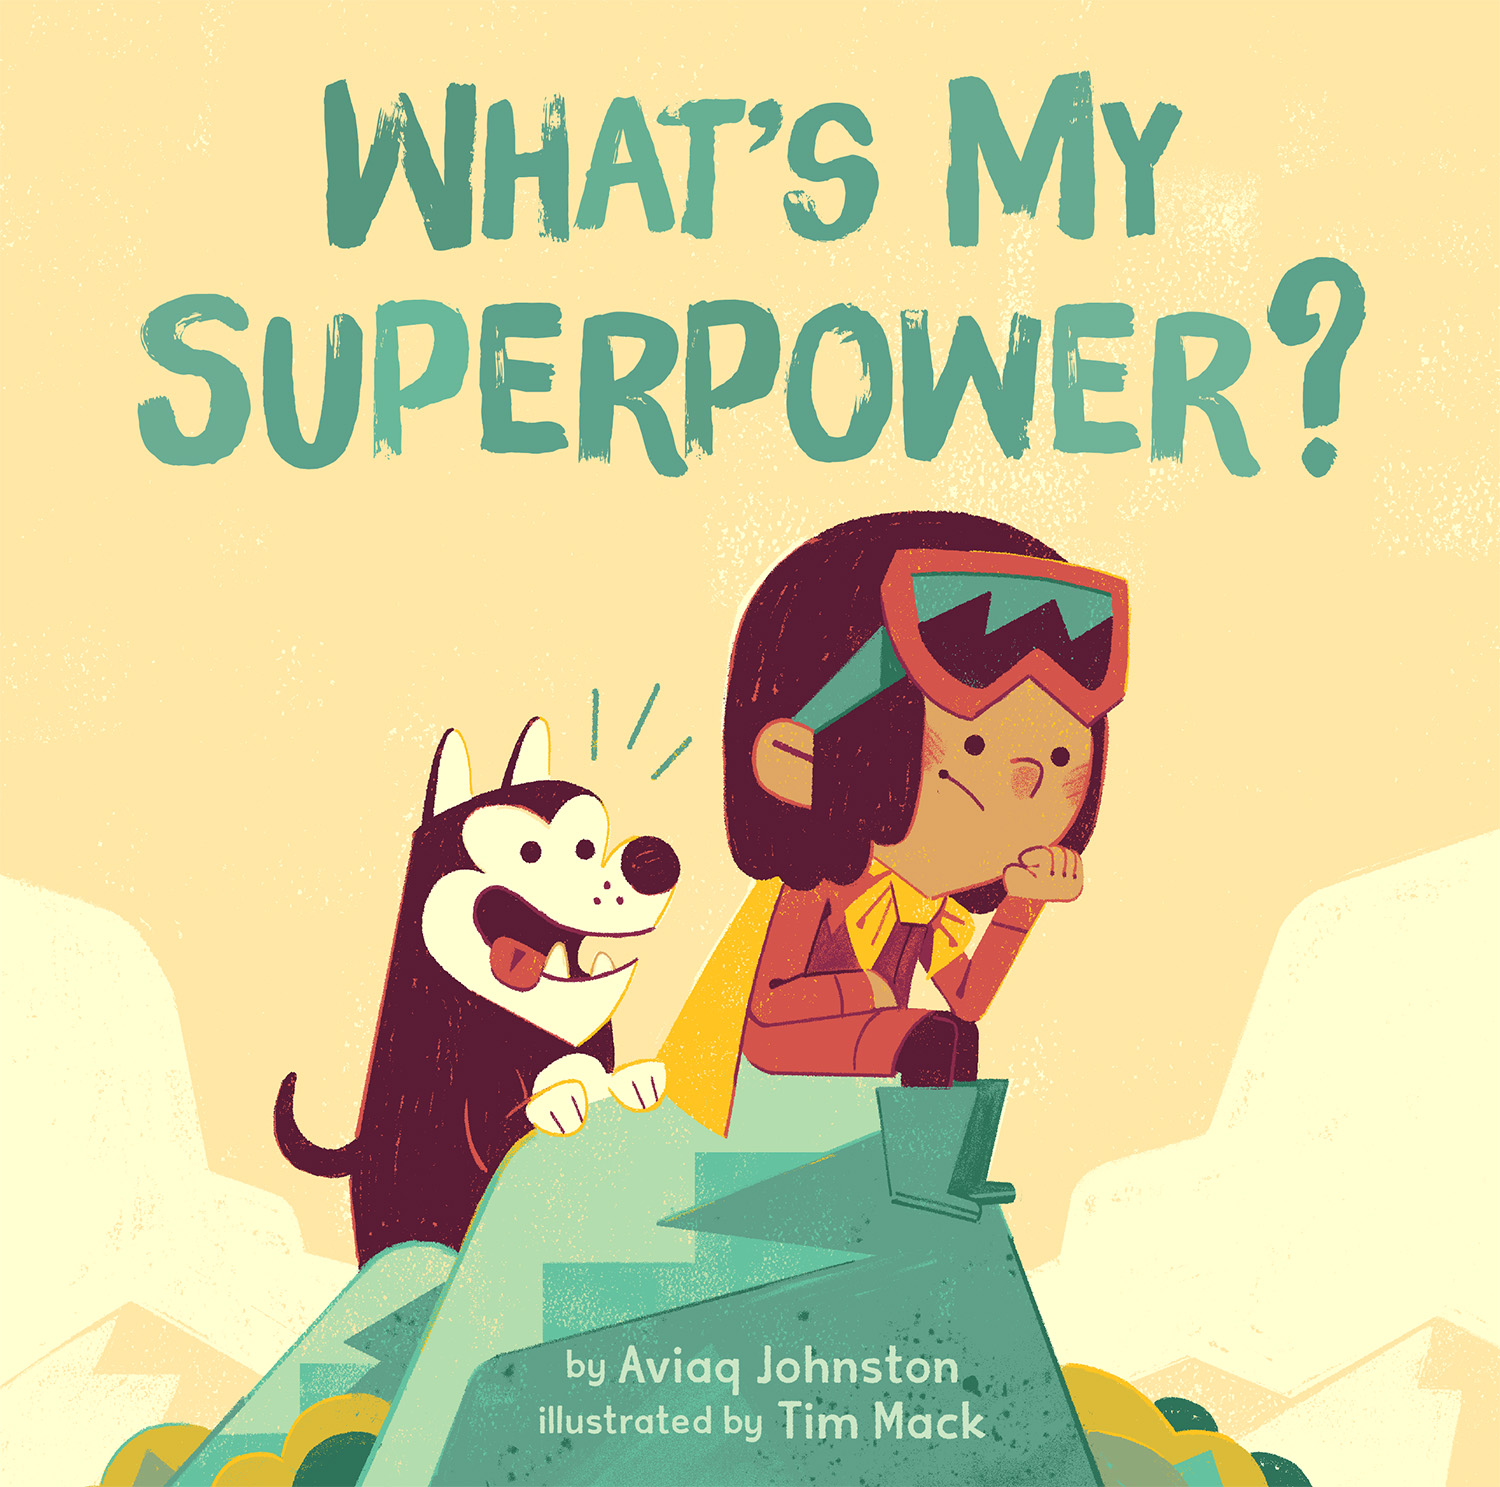 What's My Superpower?